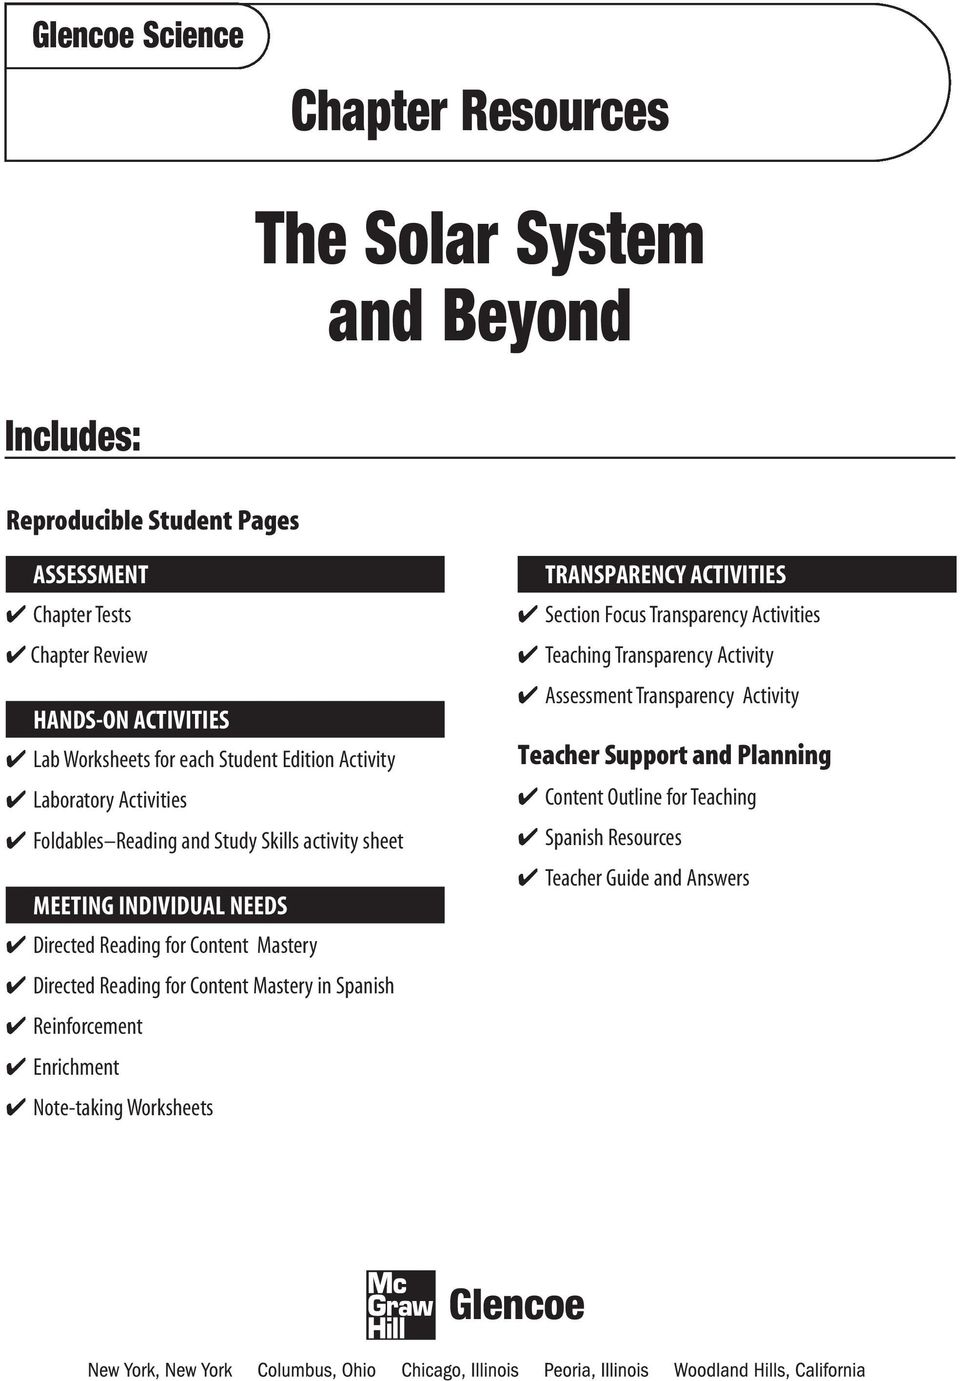 worksheet Solar System Worksheets Pdf the solar system and beyond pdf content mastery directed reading for in spanish reinforcement enrichment note taking worksheets transparency